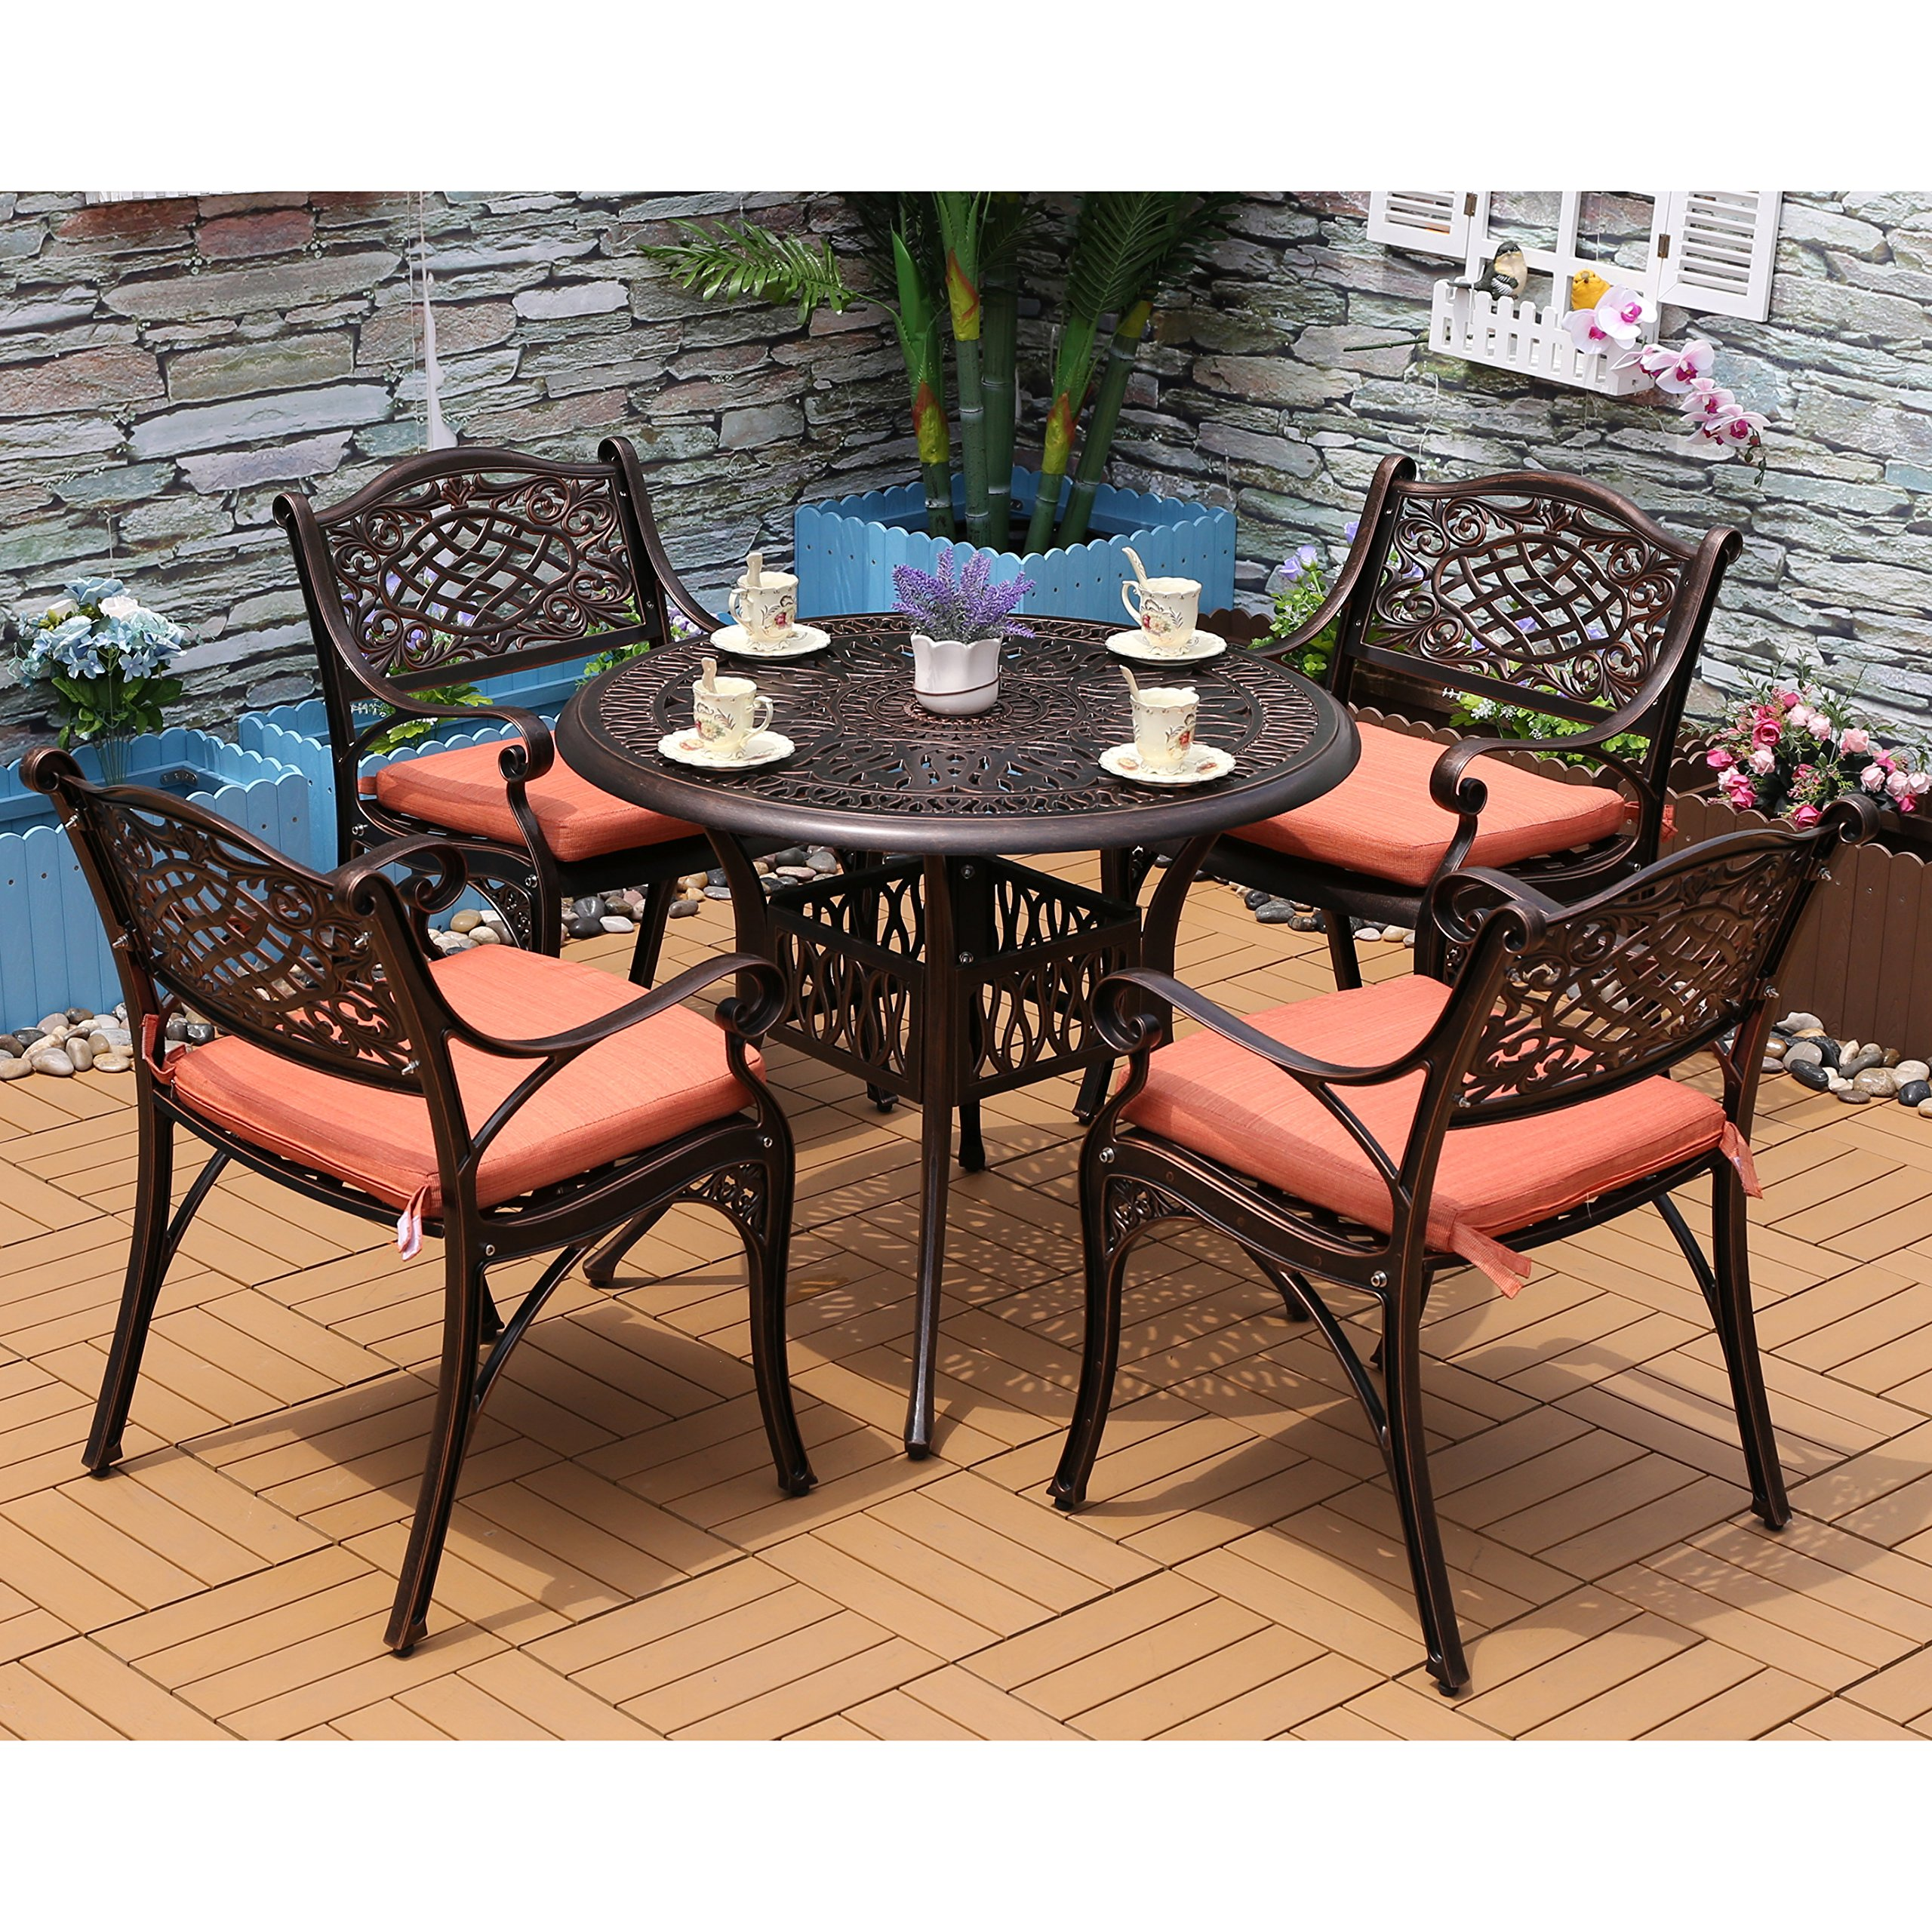 Outdoor Patio Furniture Dining Table Yongcun Outdoor Patio Furniture Cast Aluminum Dining Set Patio Dining Table Chair Color Is Antique Bronze One 35 4